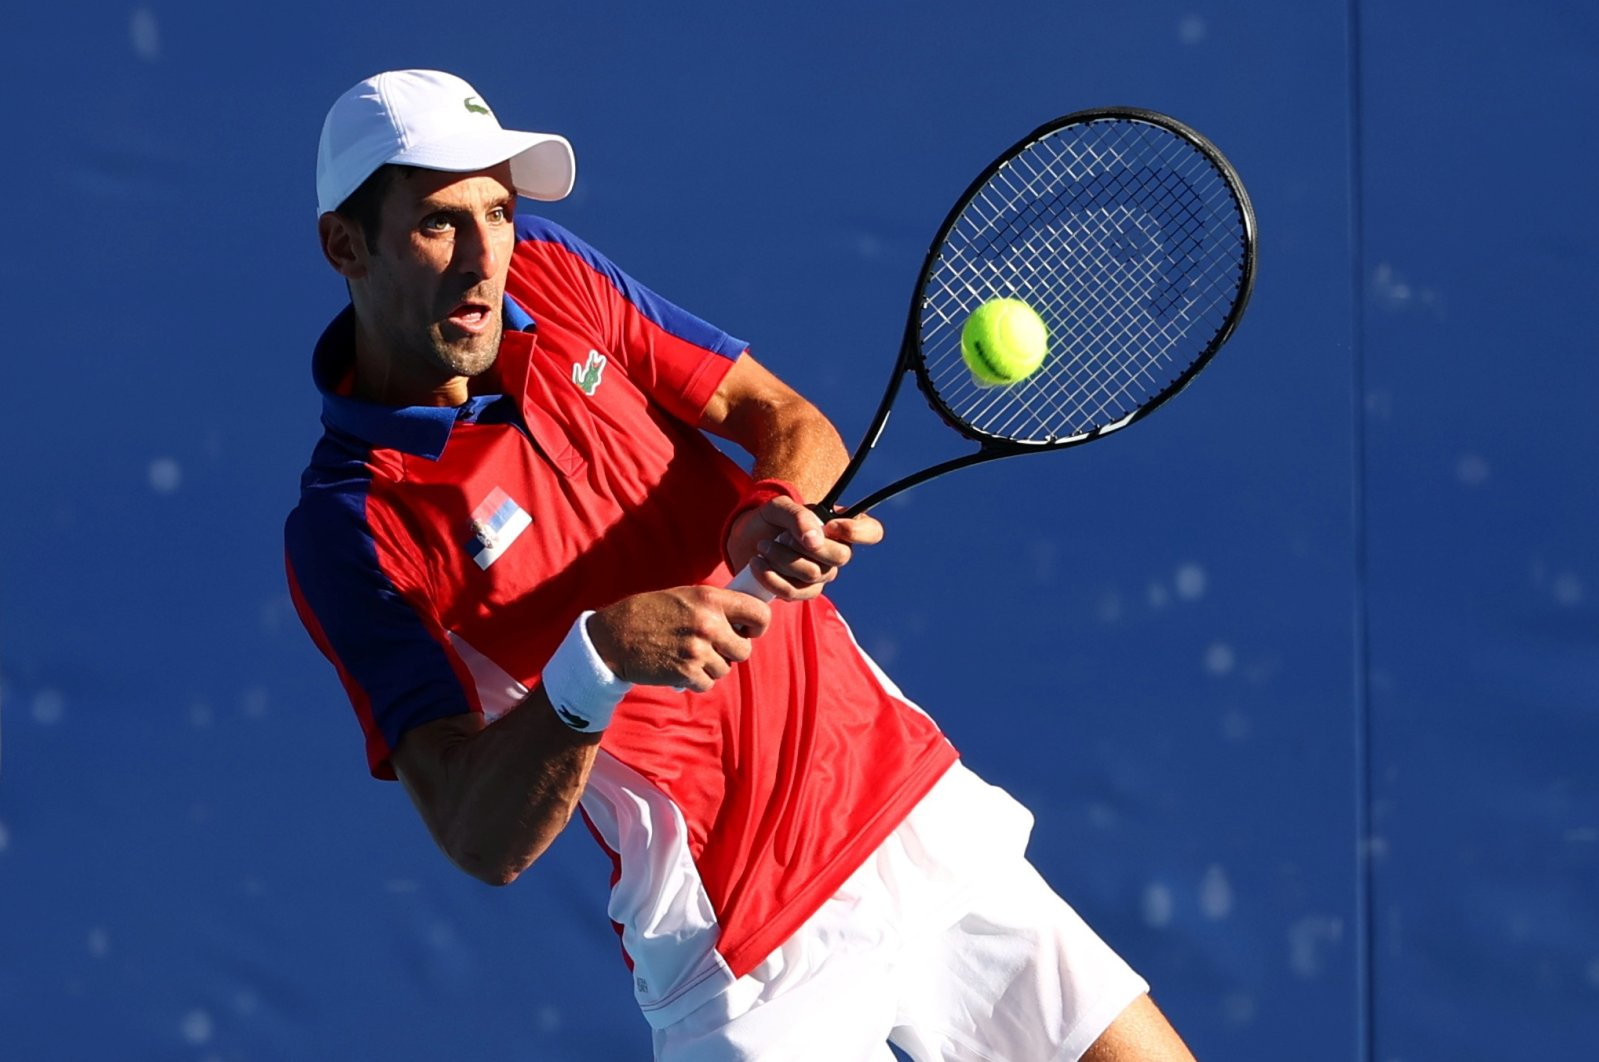 Serbia's Novak Djokovic in action during the Tokyo 2020 Olympics bronze medal match against Spain's Pablo Carreno, Tokyo, Japan, July 31, 2021.